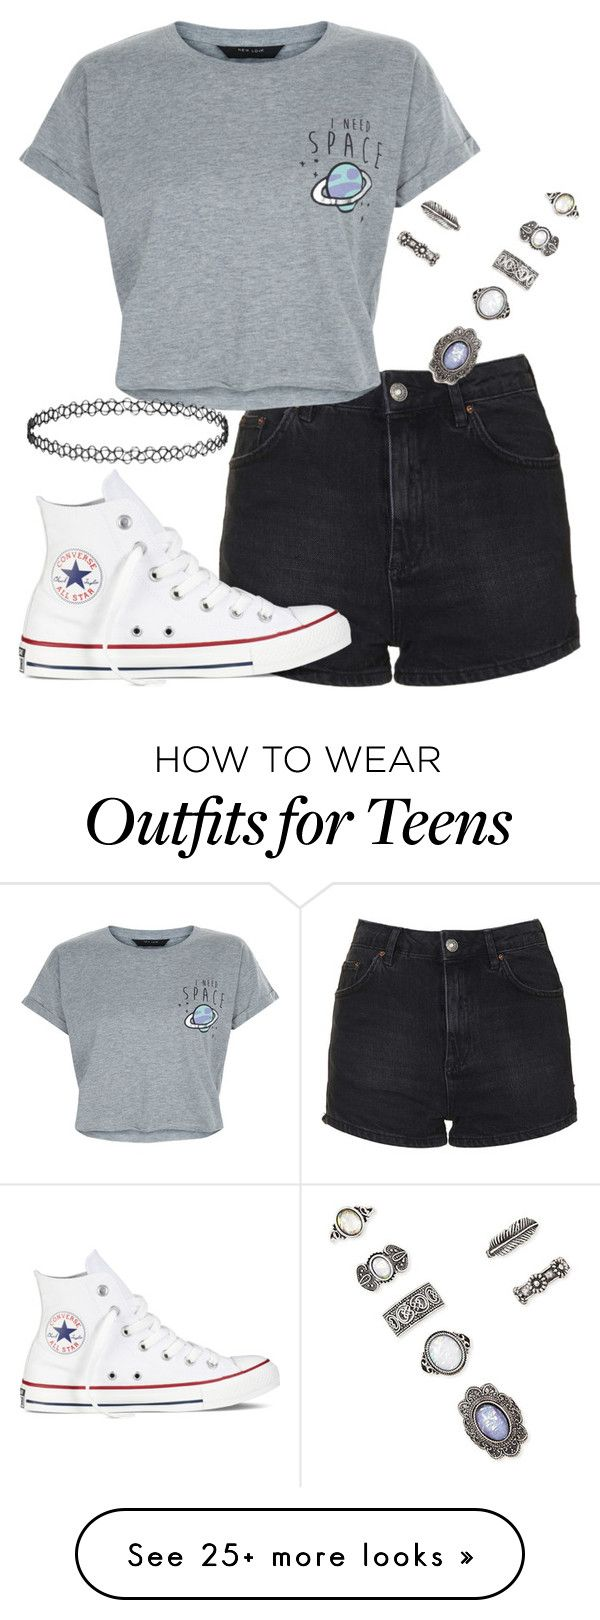 """jade insp"" by bekahtee on Polyvore featuring Topshop, New Look, Converse and Forever 21"